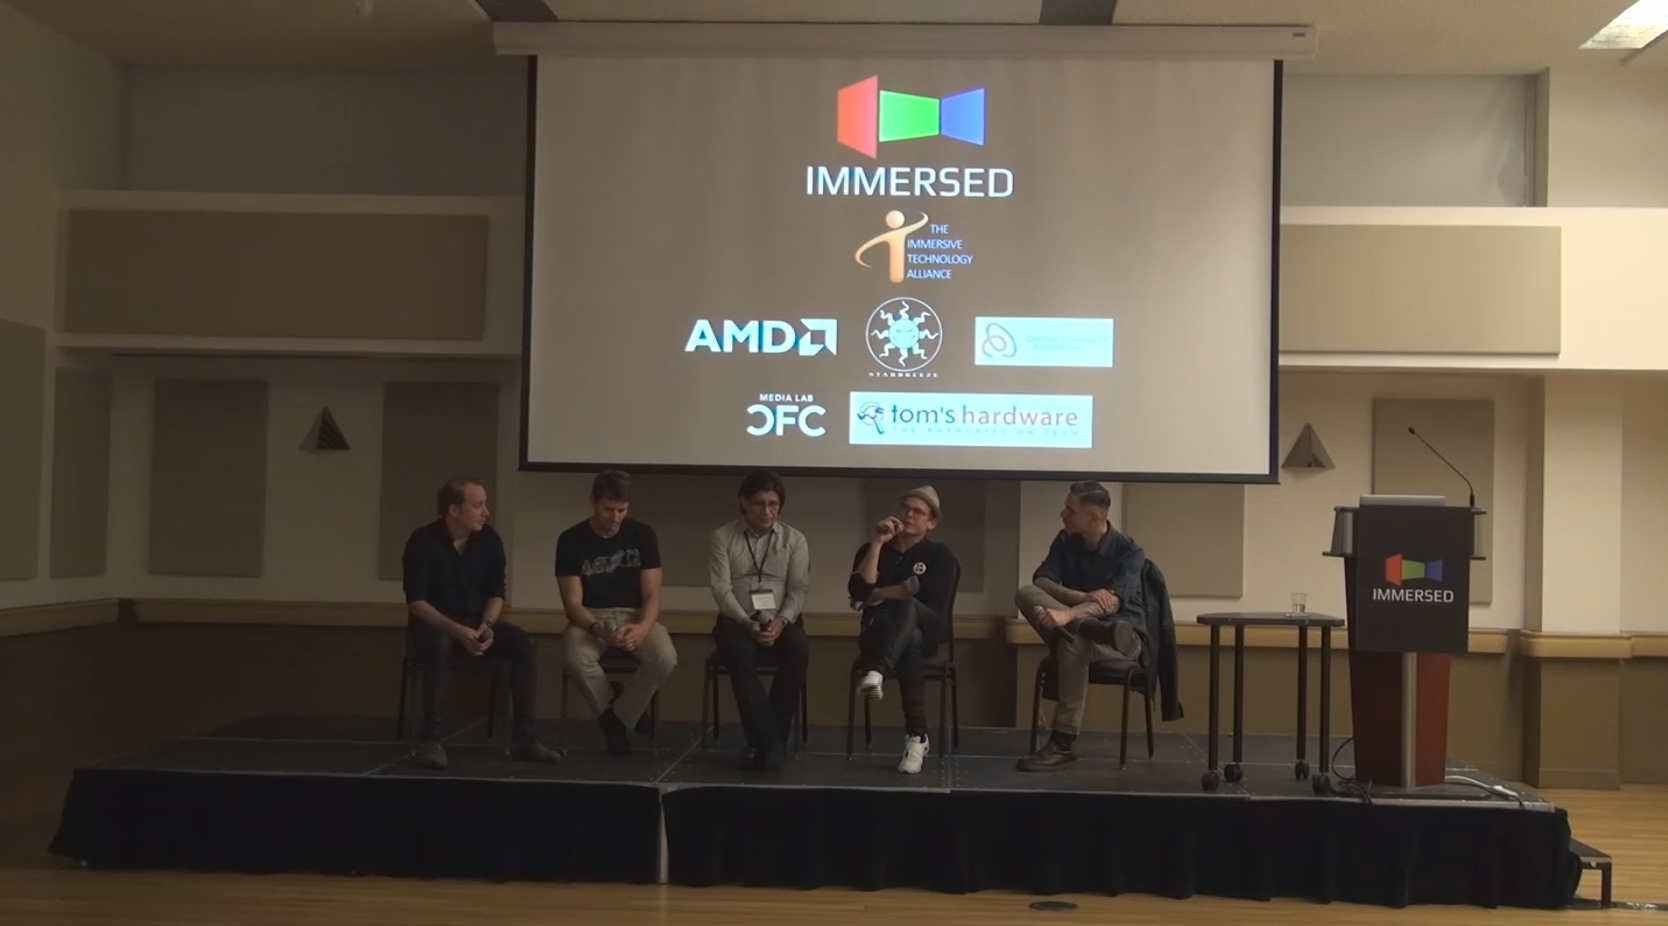 L-R: Guillaume Gouraud (Starbreeze Studios), Dr. Richard Marks (Sony Computer Entertainment), Dario Laverde (HTC), Ben Miller (WEVR), Lucas Cochran (Discovery Channel's Daily Planet)